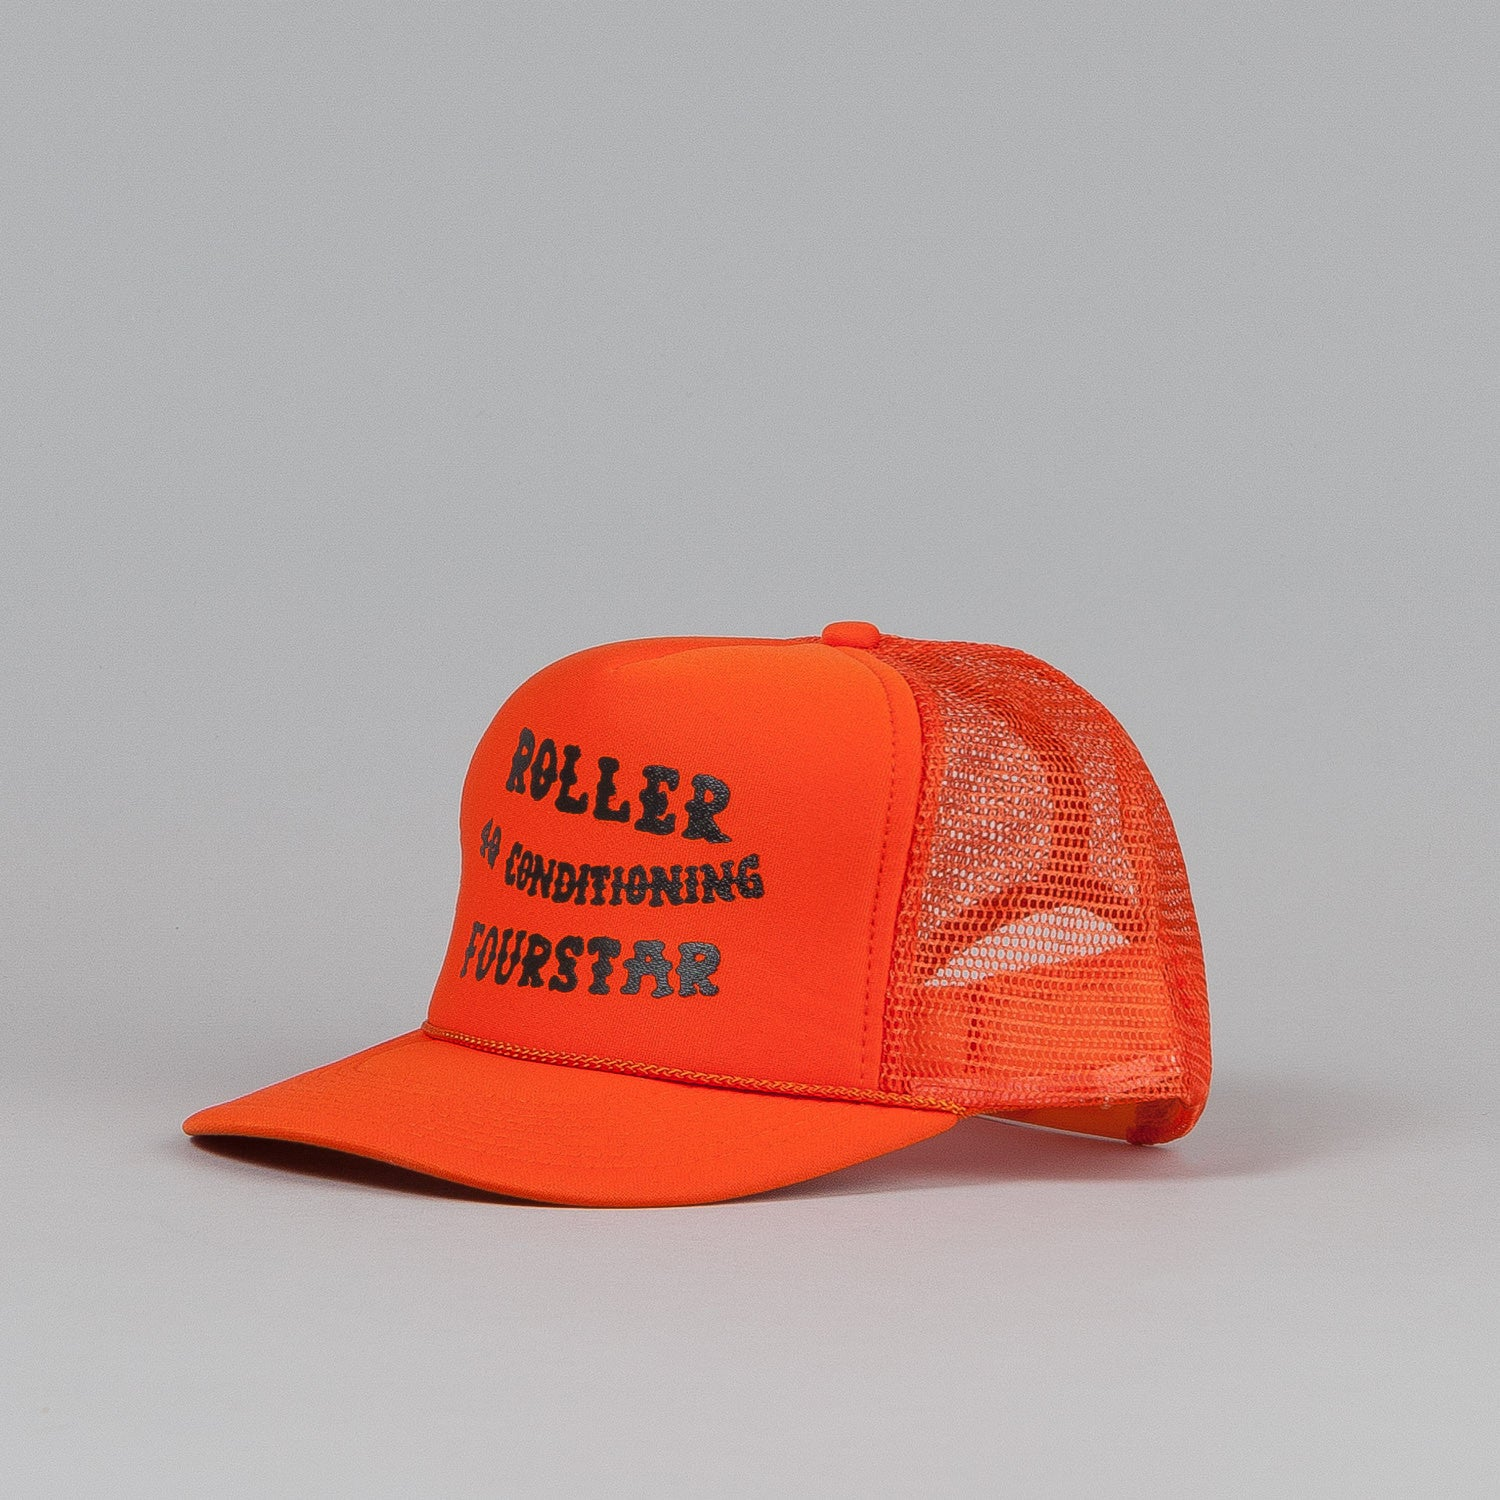 Fourstar x 4Q x Roller Trucker Cap Orange